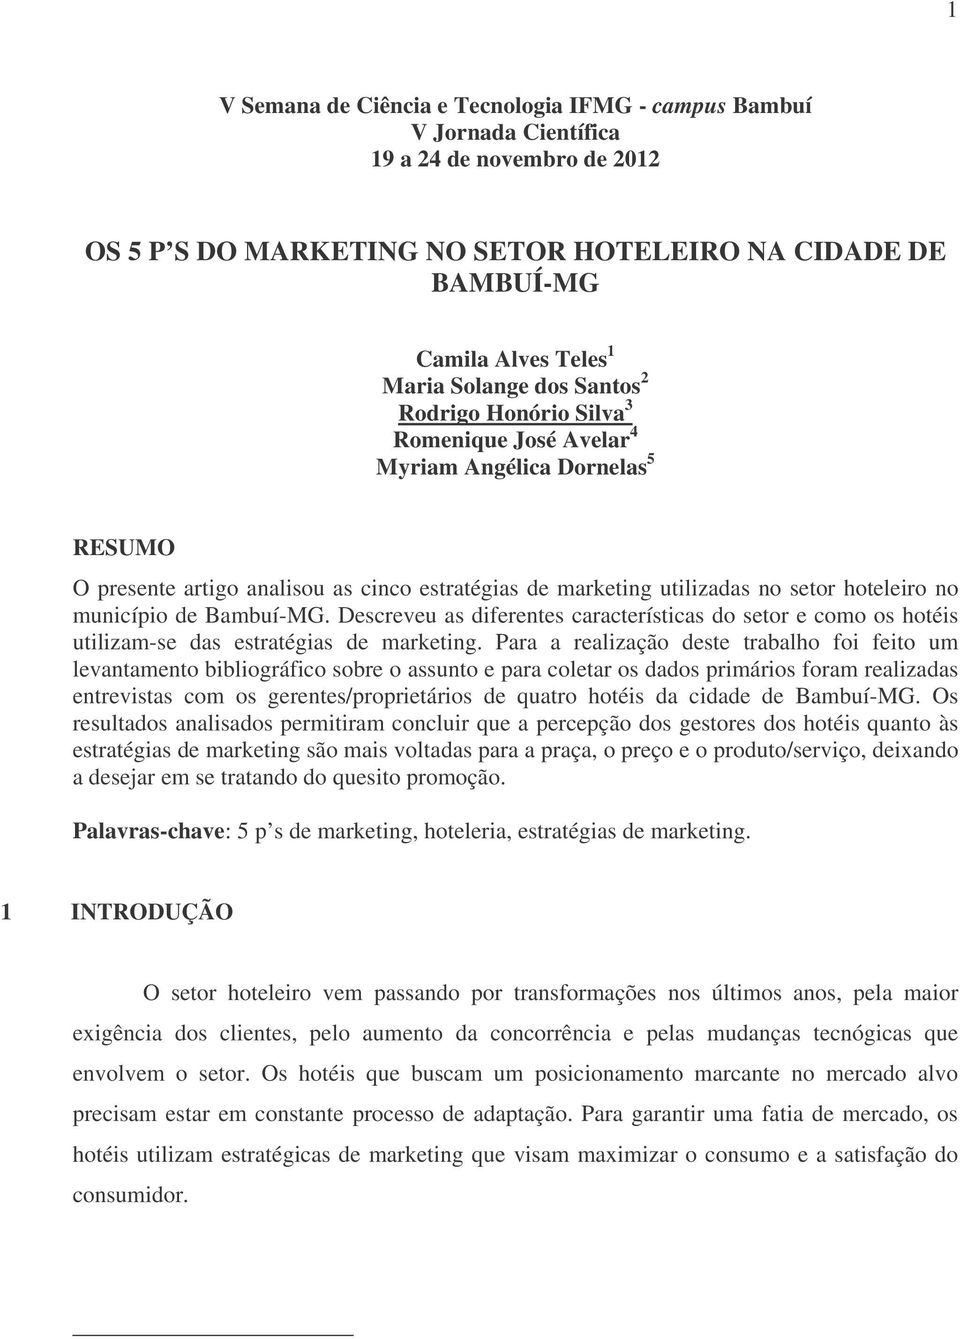 Descreveu as diferentes características do setor e como os hotéis utilizam-se das estratégias de marketing.